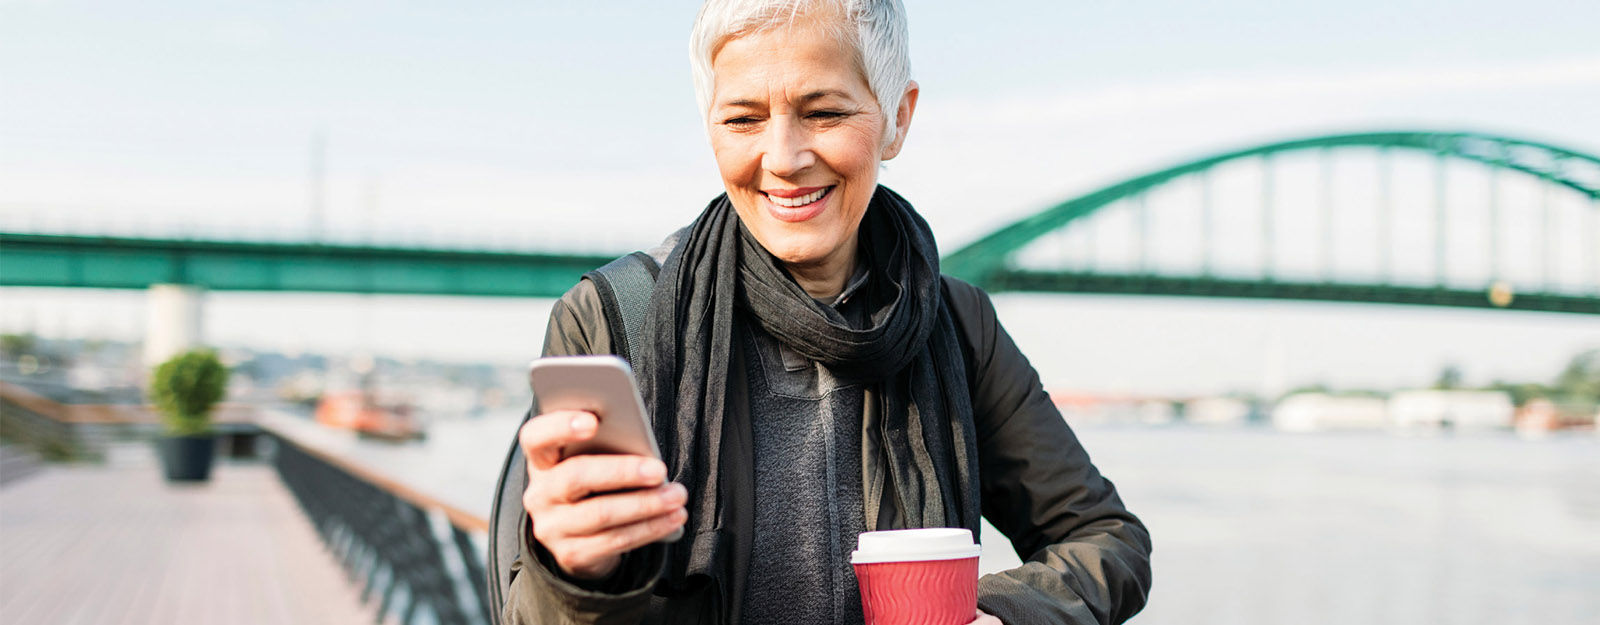 Image of woman site seeing while looking at her phone and holding a coffee.